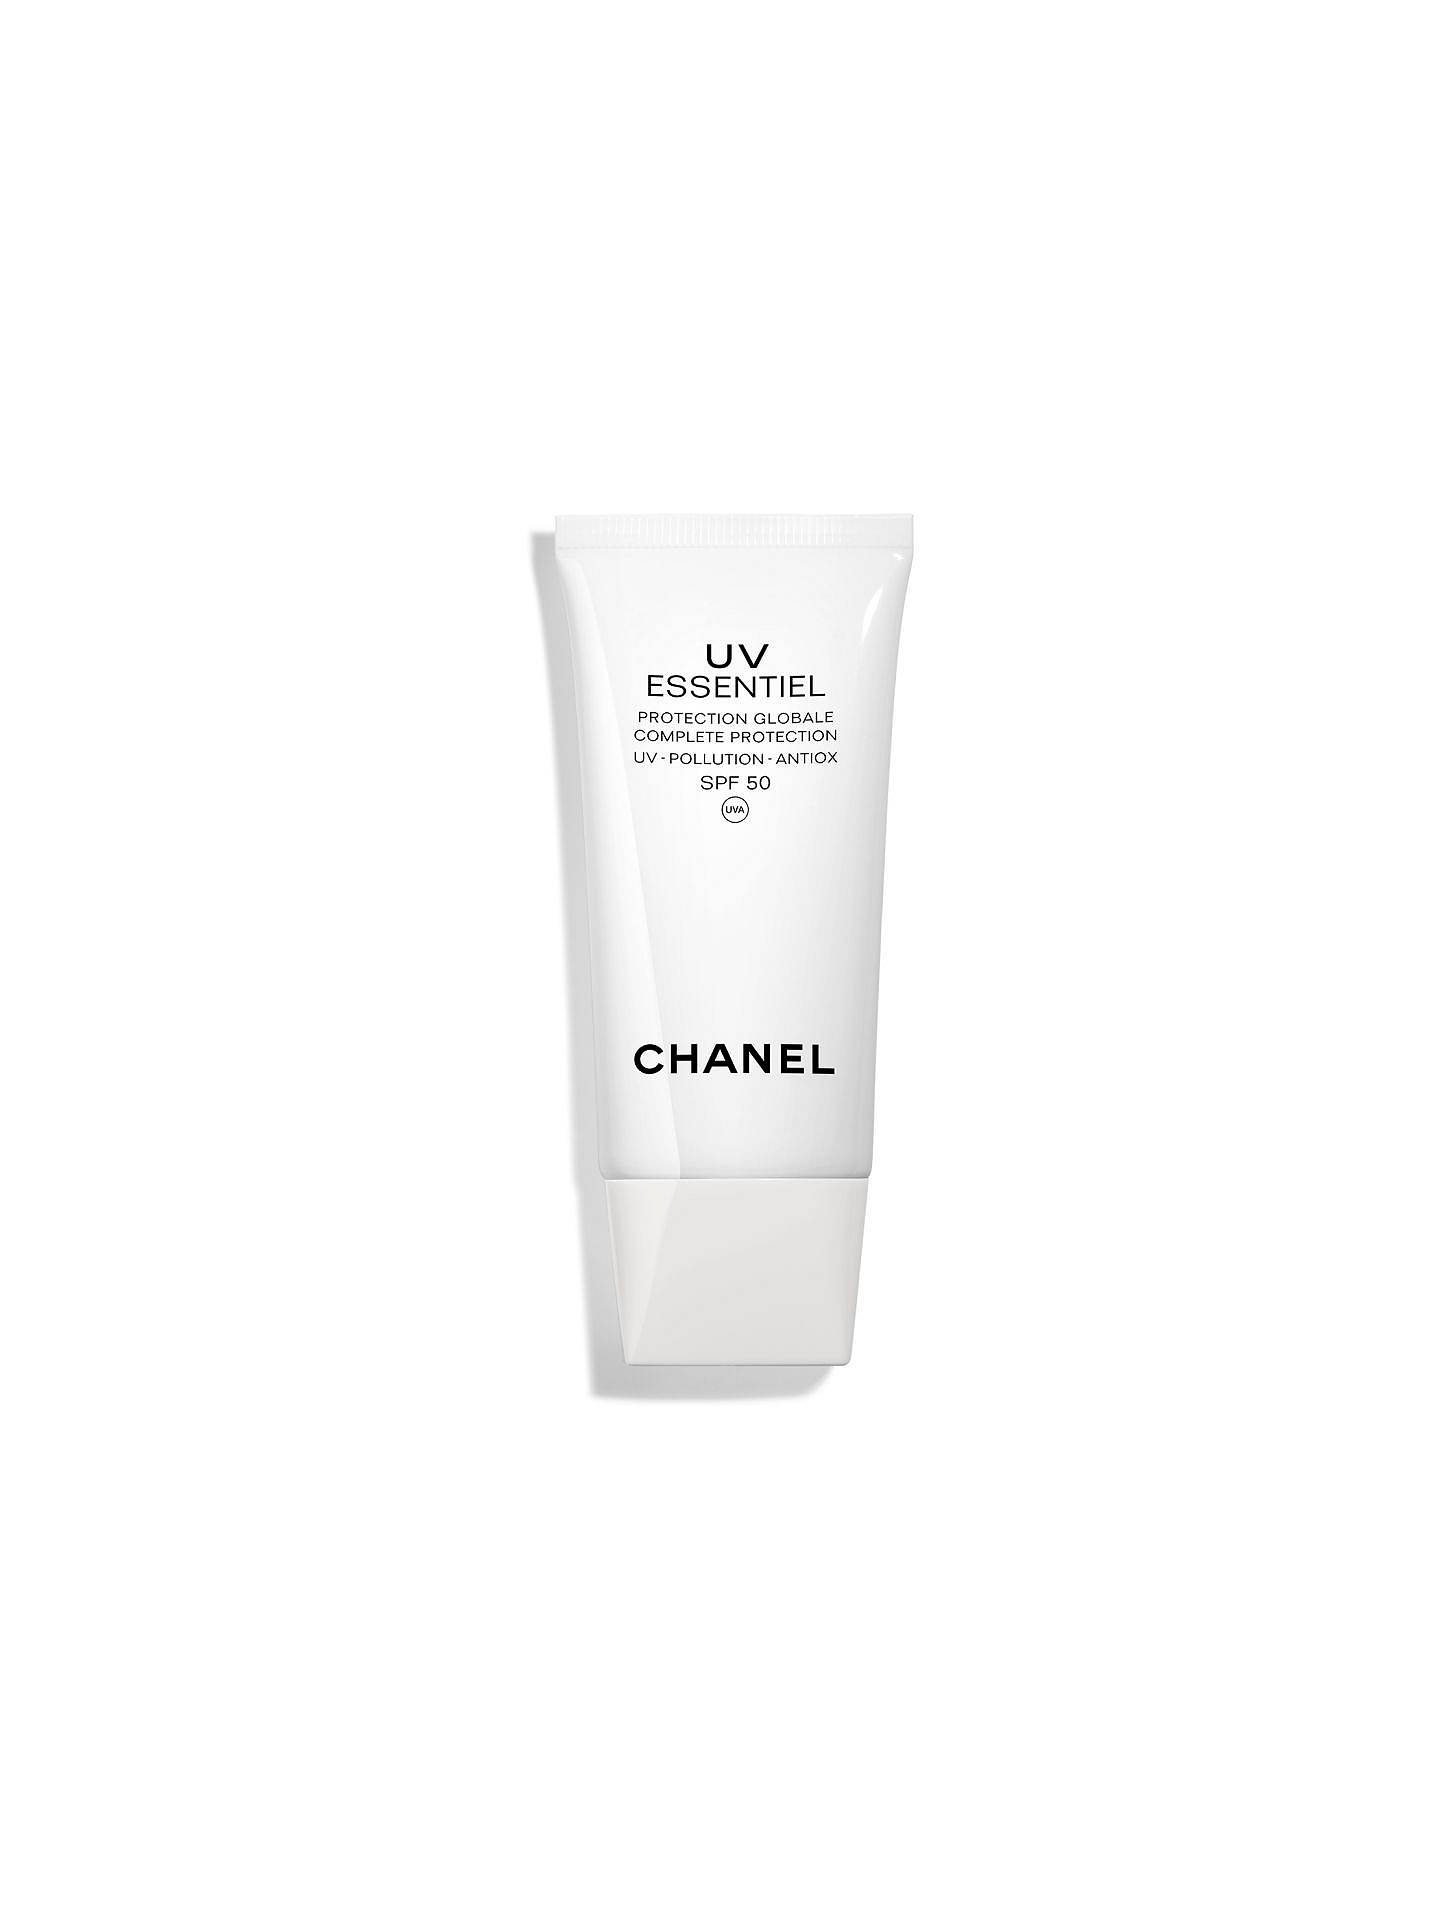 Buy CHANEL UV Essentiel Complete Protection UV - Pollution - Antiox SPF 50 Online at johnlewis.com